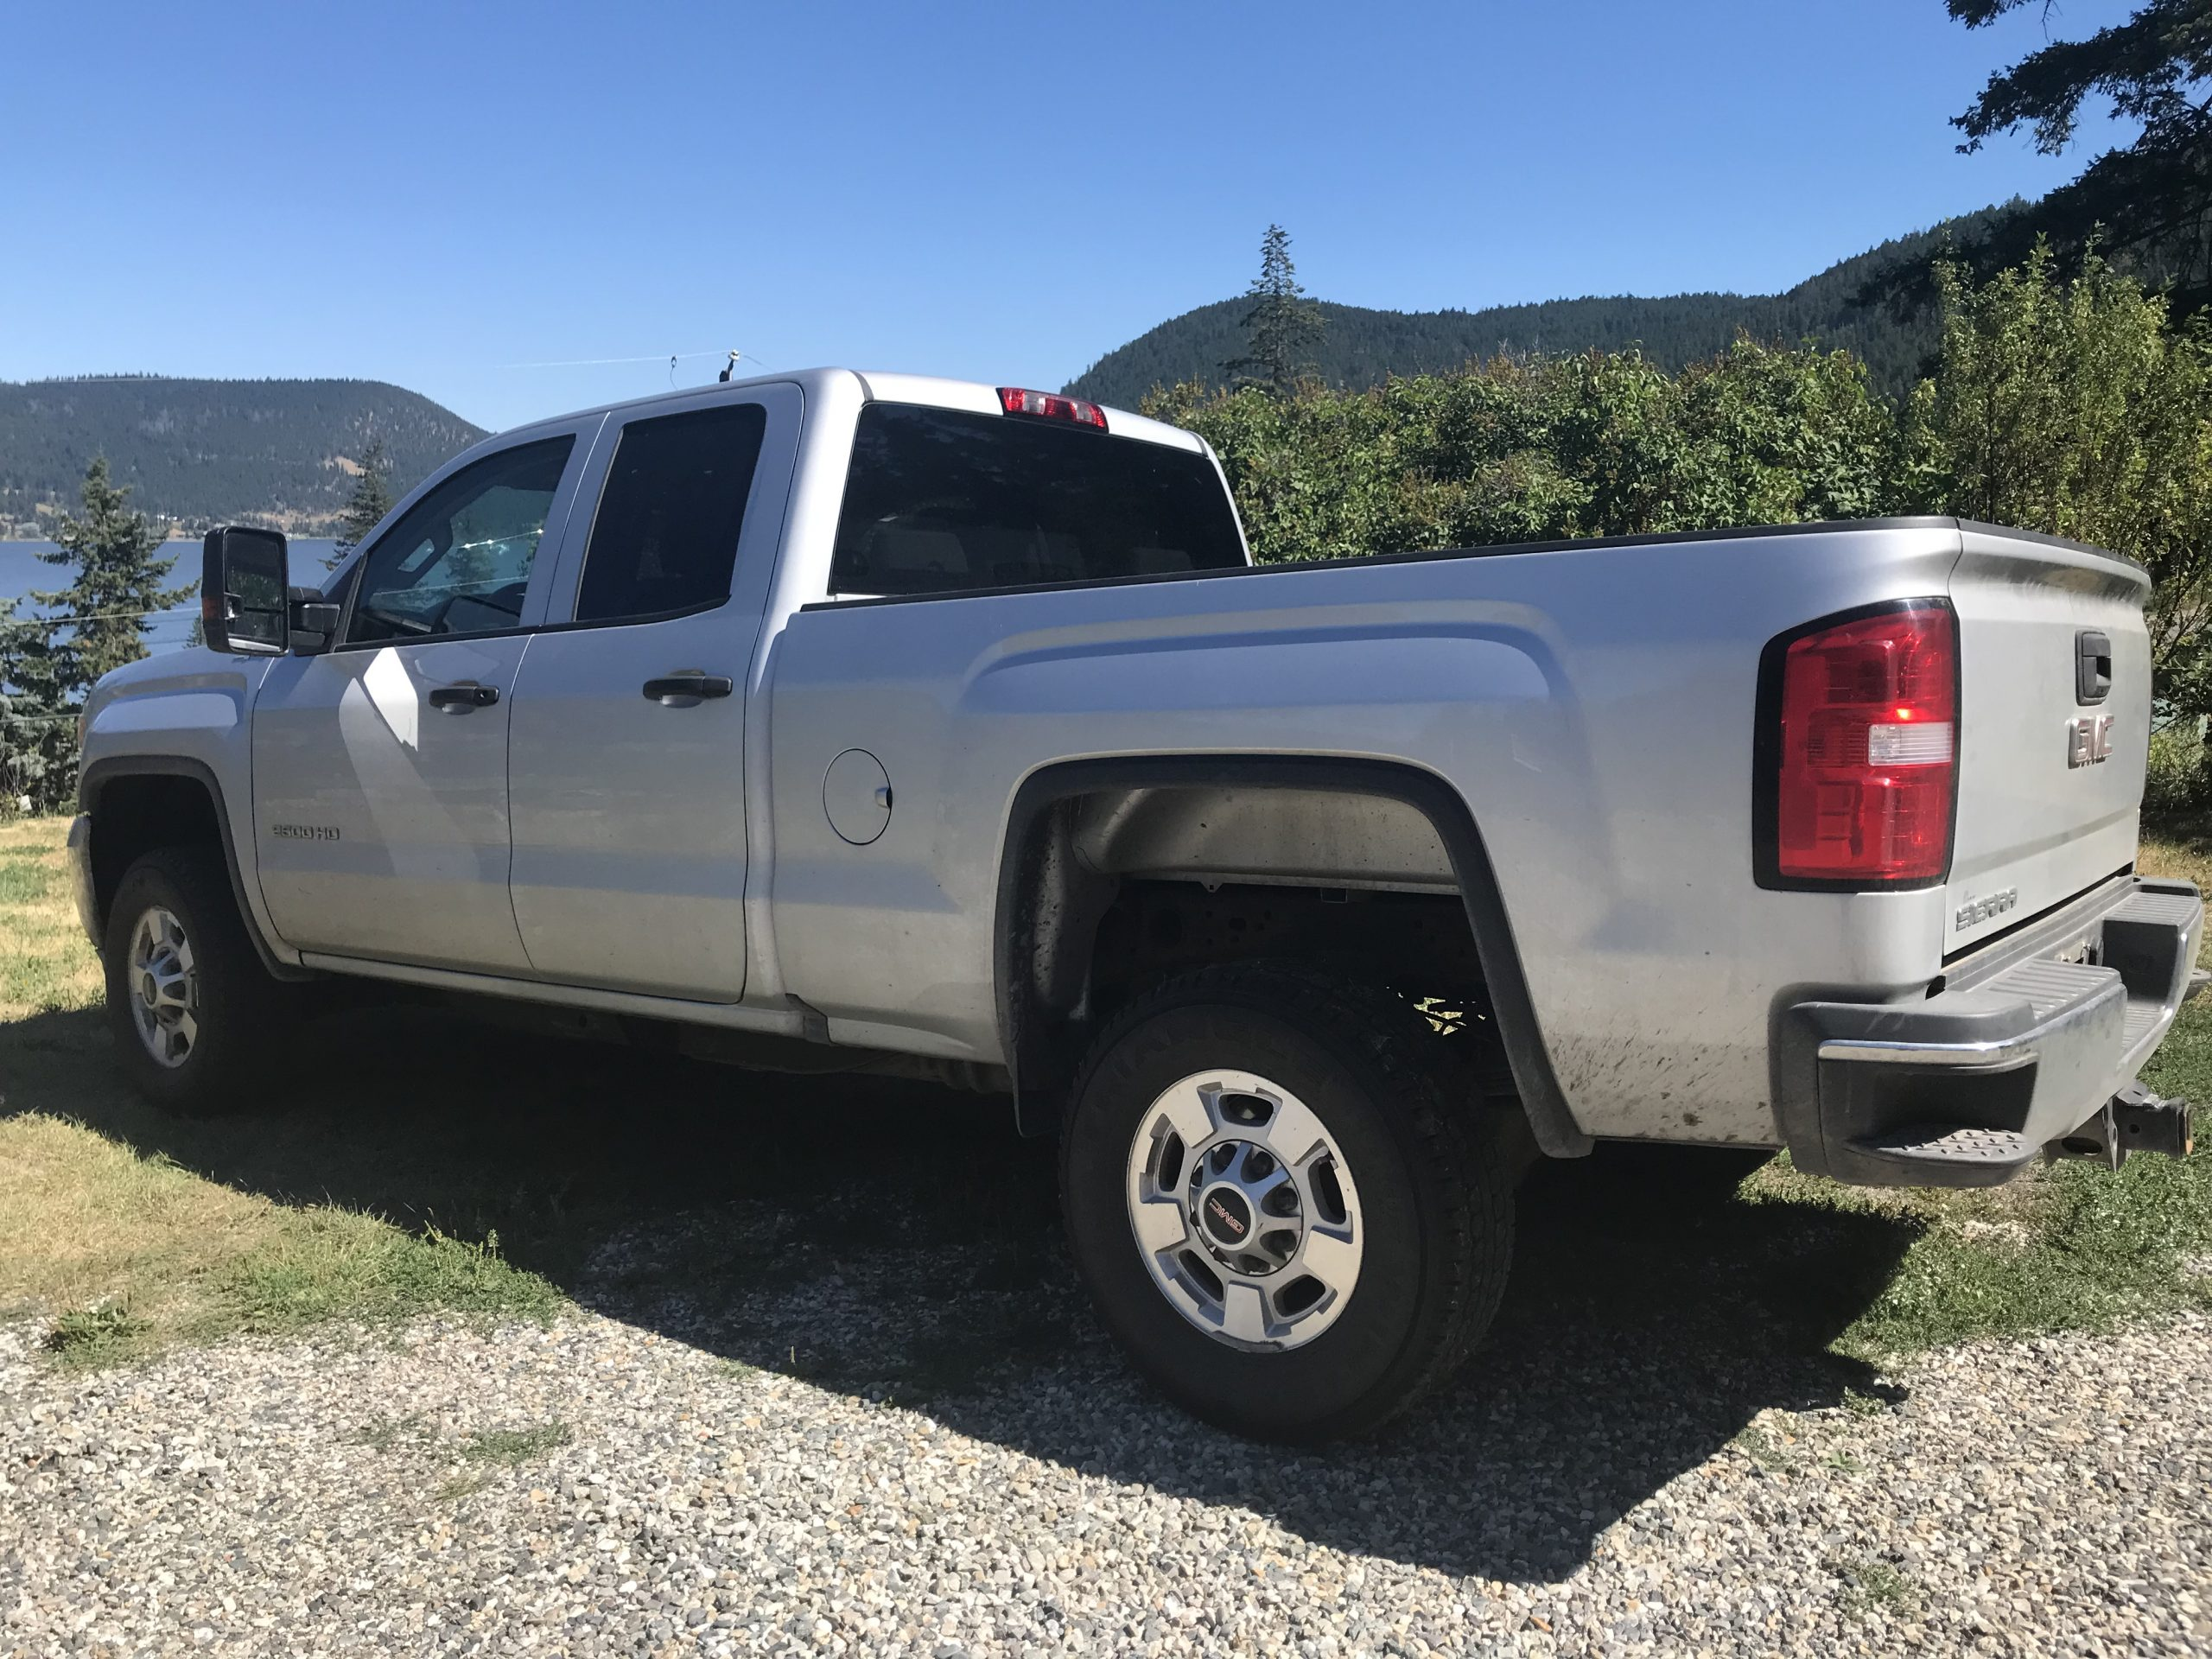 2018 CMC Sierra 2500 HD 4×4 B-WL-0060 Re-Listed Located in Prince George